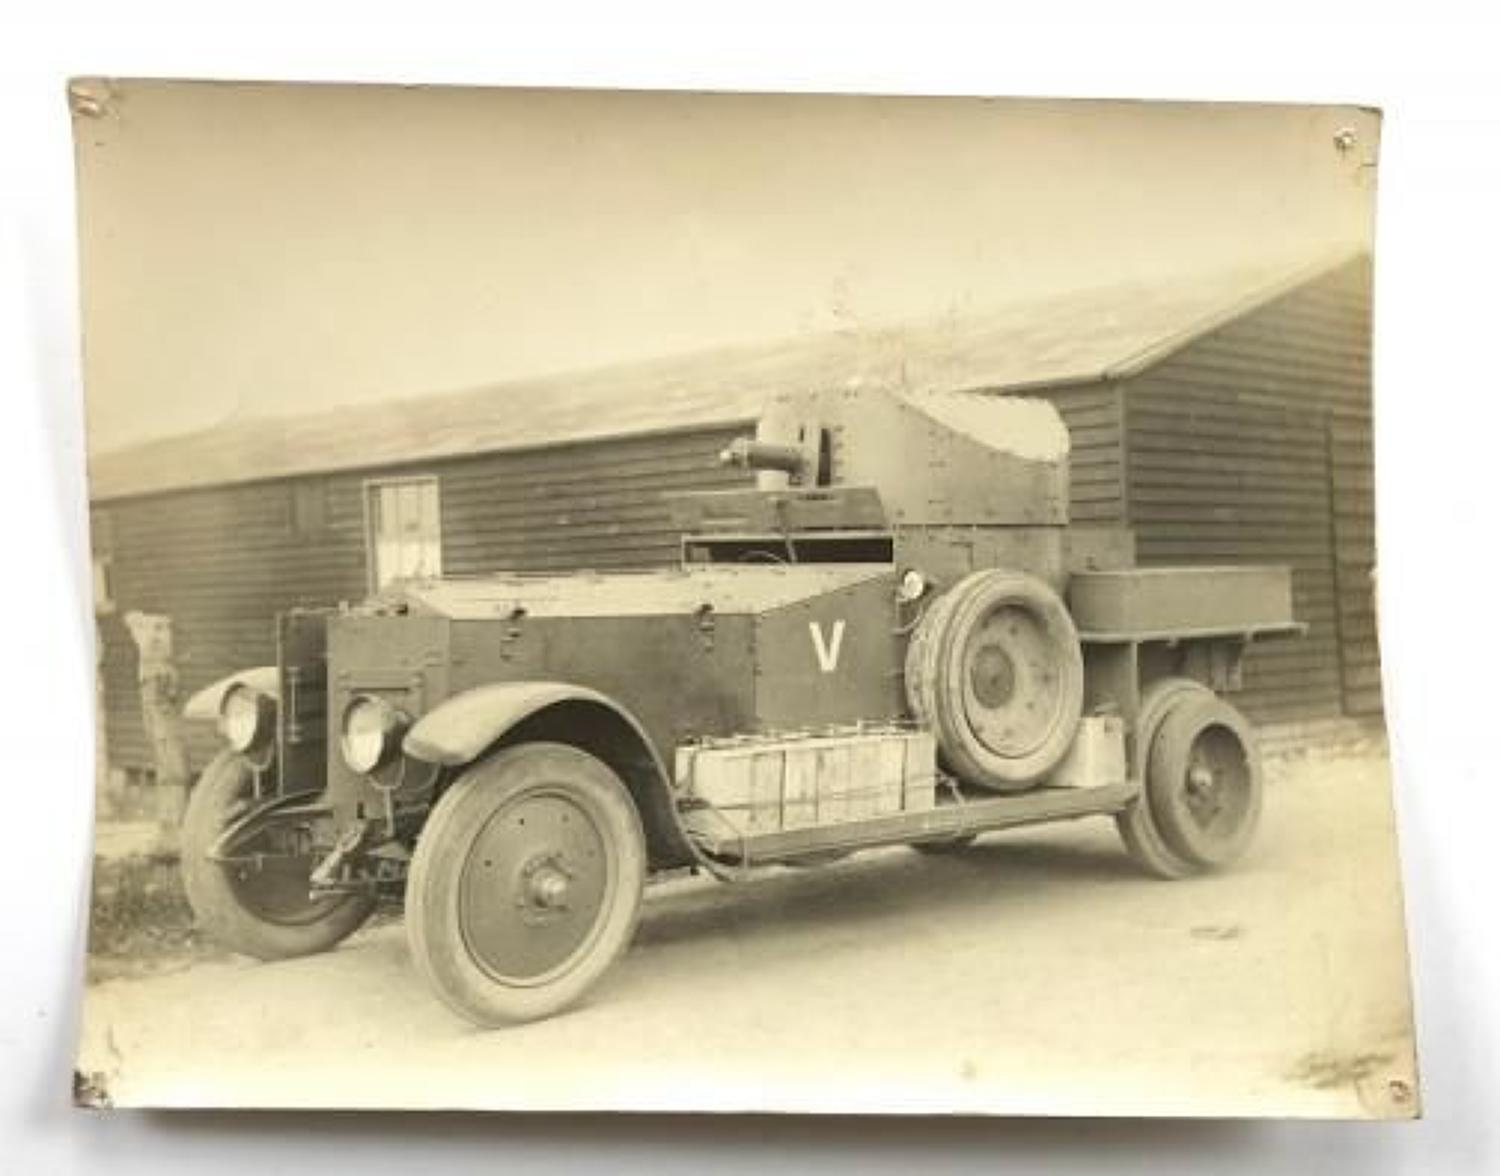 WW1 Period Large Original Photograph of a Tank Corps Armoured Car